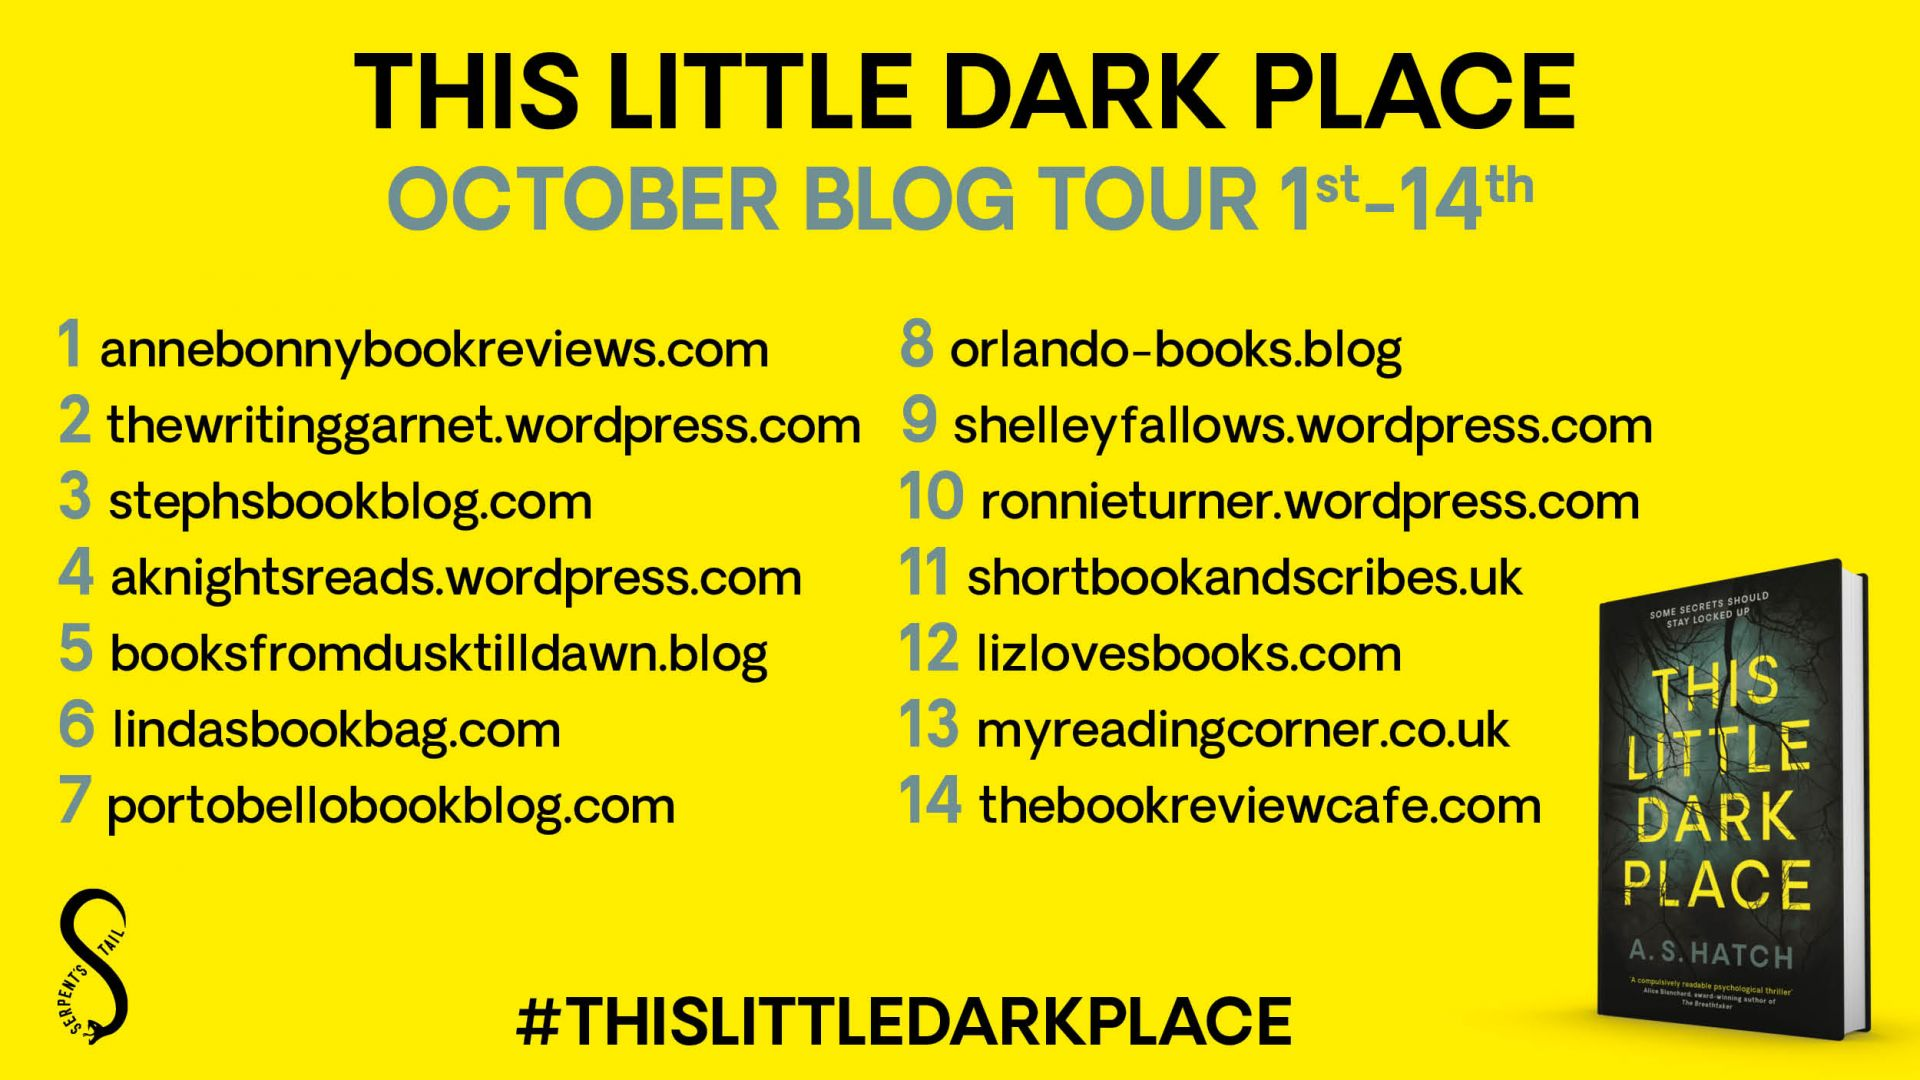 This Little Dark Place – A S Hatch